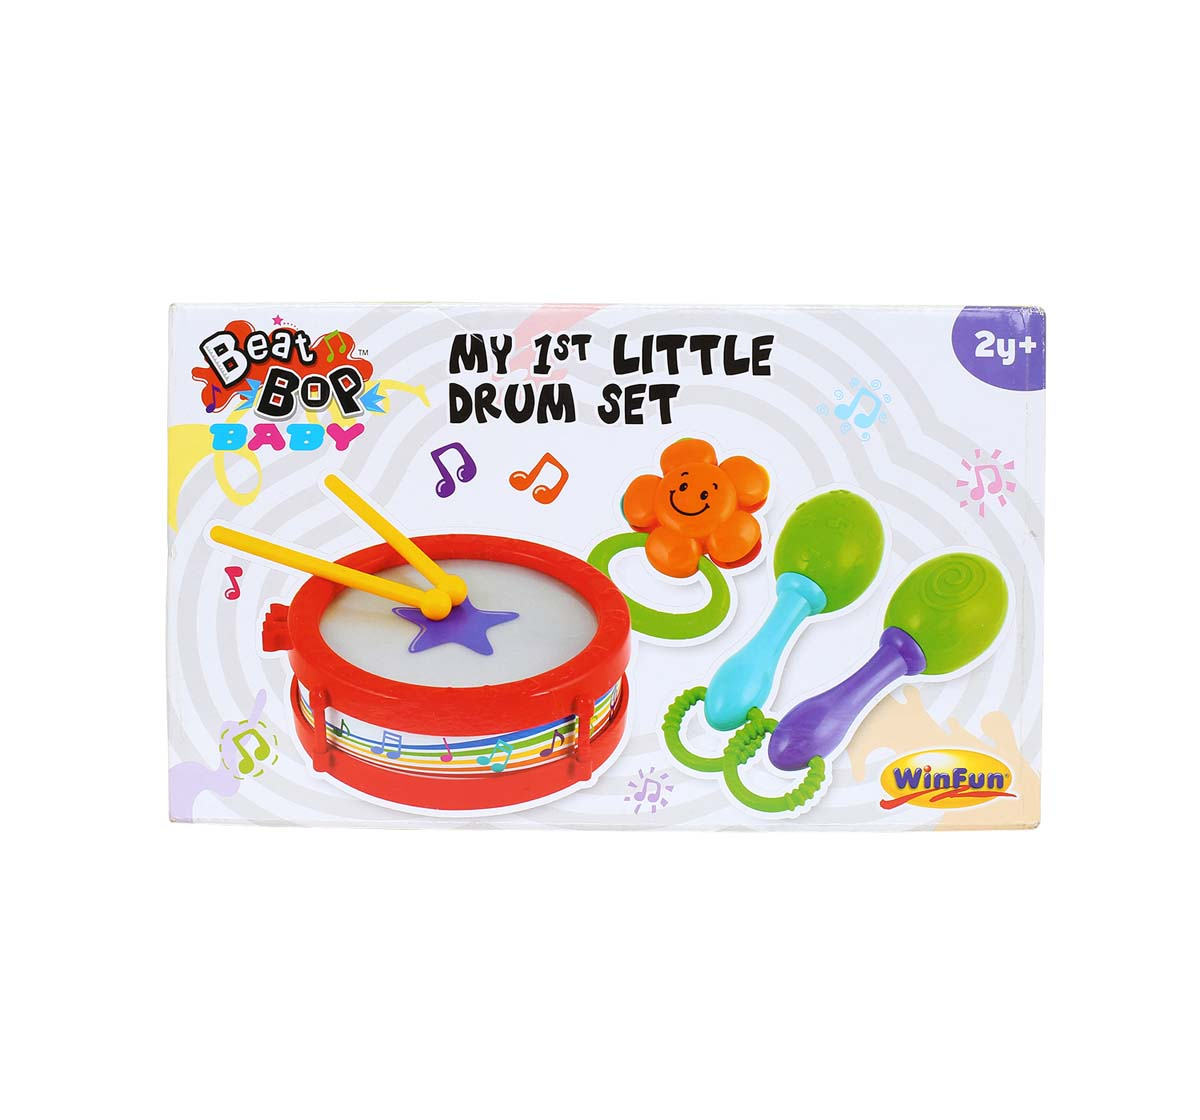 WinFun | Winfun My 1St Band Kit, Red/Green Musical Toys for Kids age 24M+